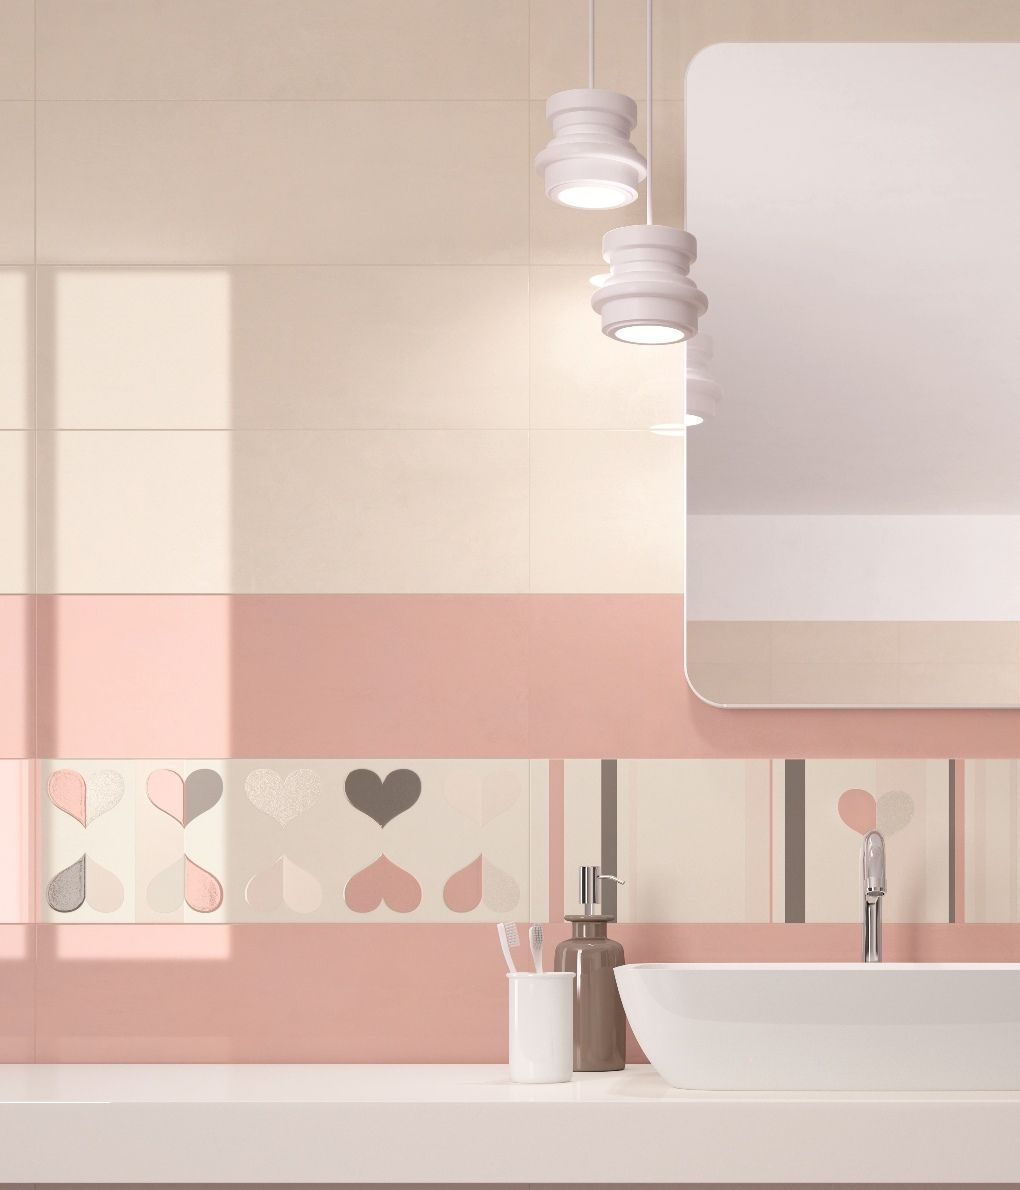 Collezione vision abkemozioni wall tiles sand lux antique pink abk group industrie ceramiche spa dailygadgetfo Choice Image